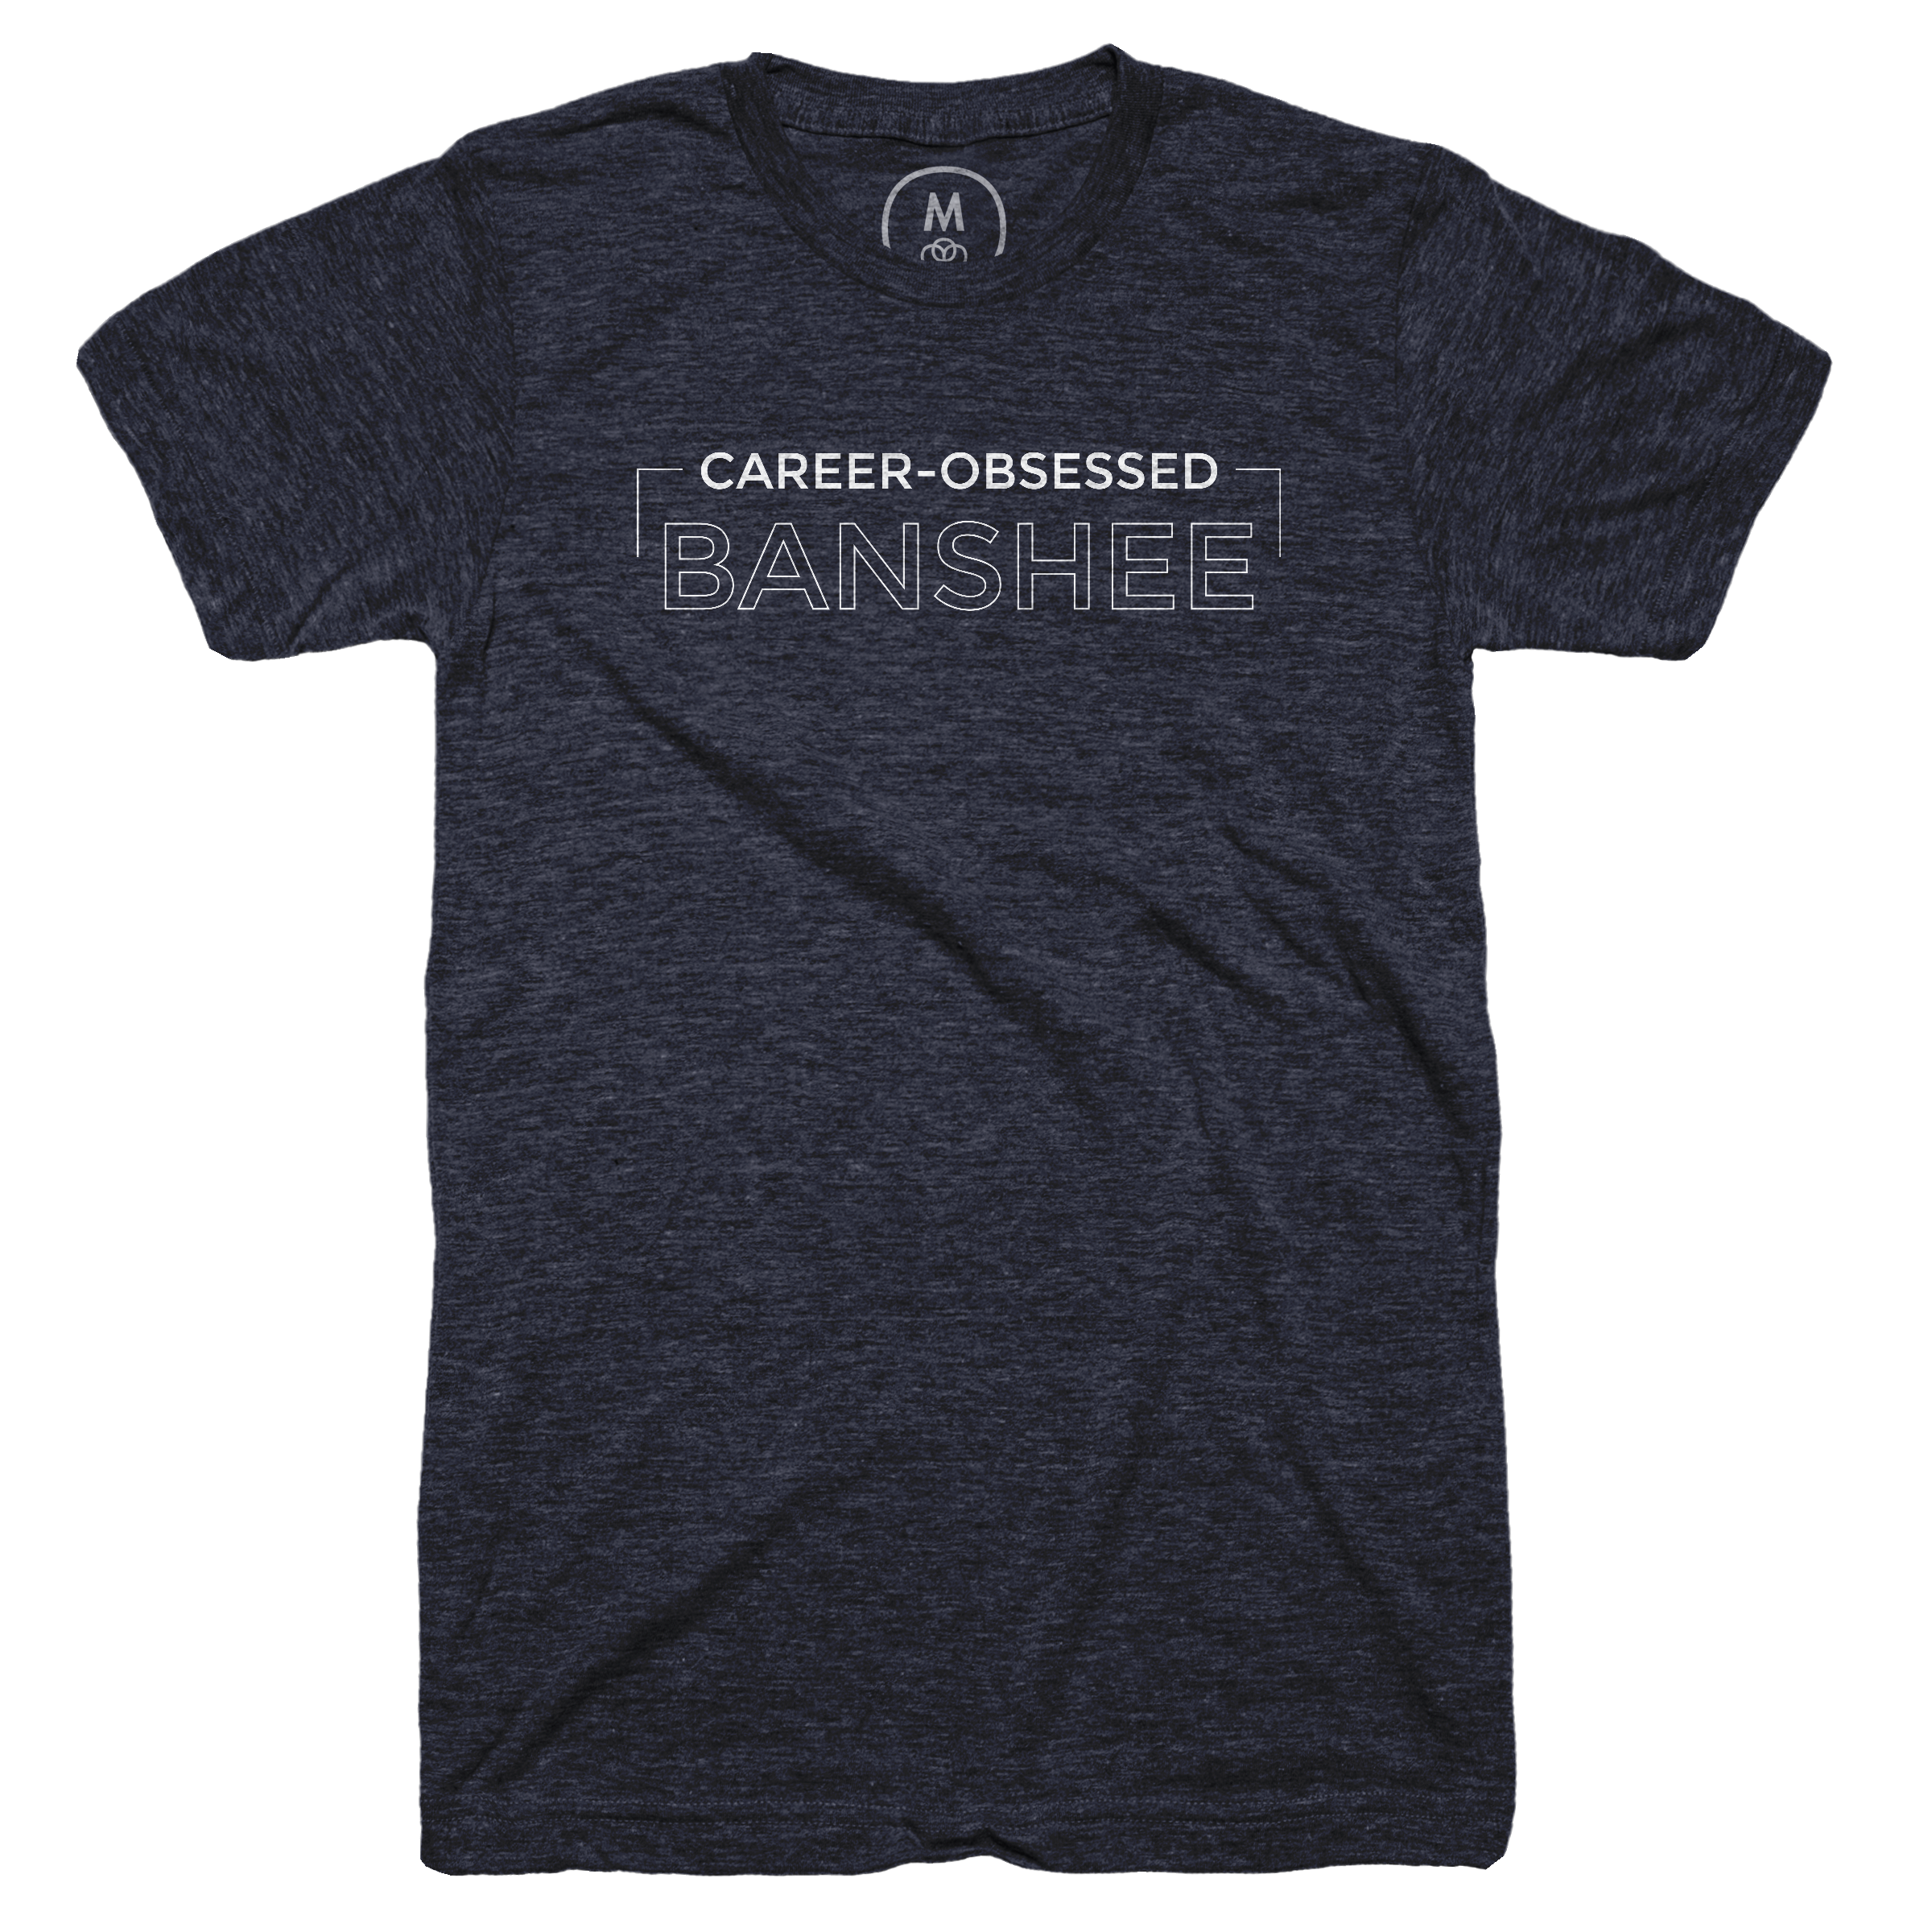 Career-Obsessed Banshee